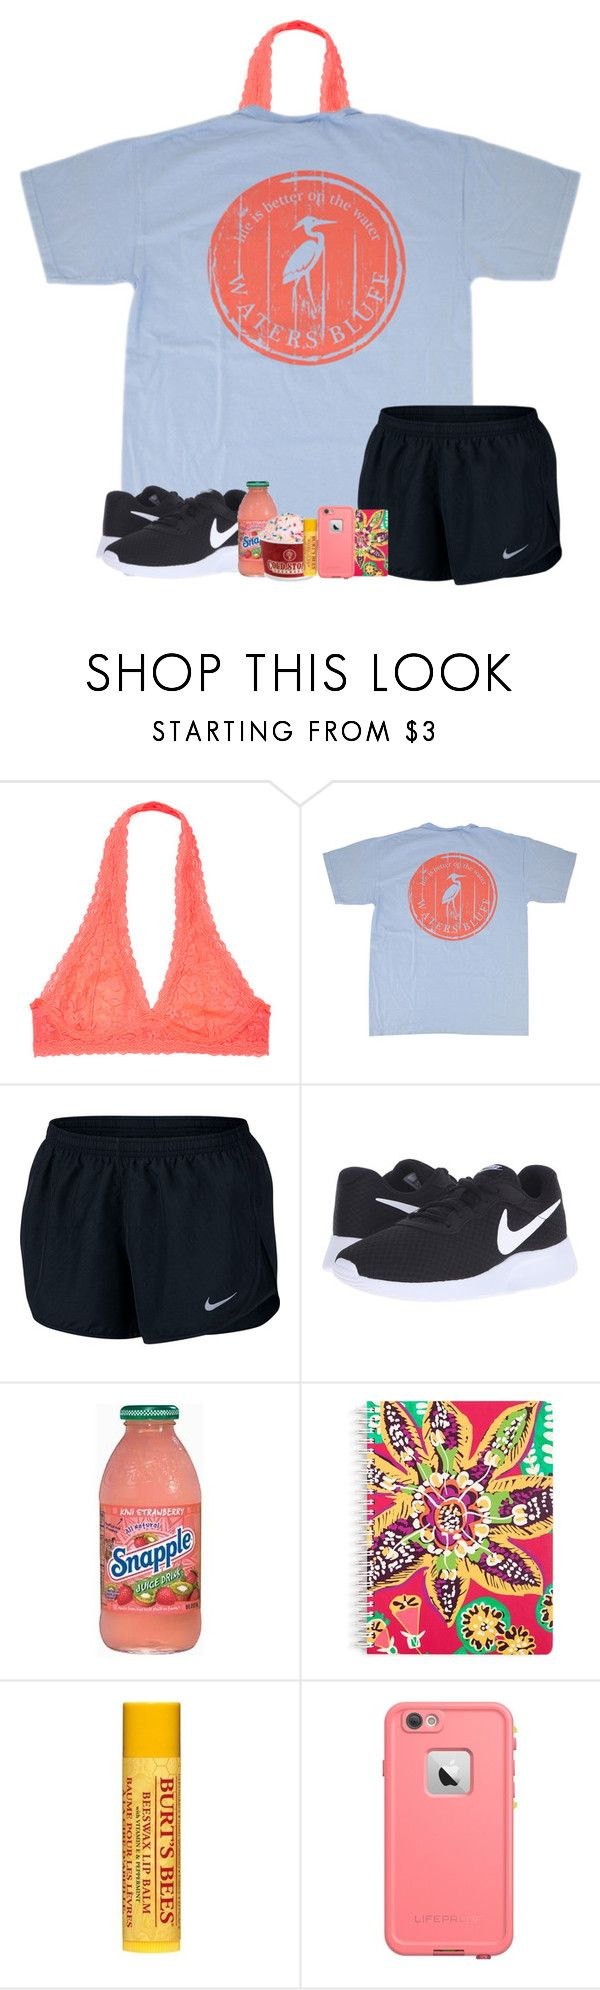 """""""QOTD: What's Your Favorite Food?"""" by katie-1111 ❤ liked on Polyvore featuring NIKE, Vera Bradley, Burt's Bees and LifeProof"""